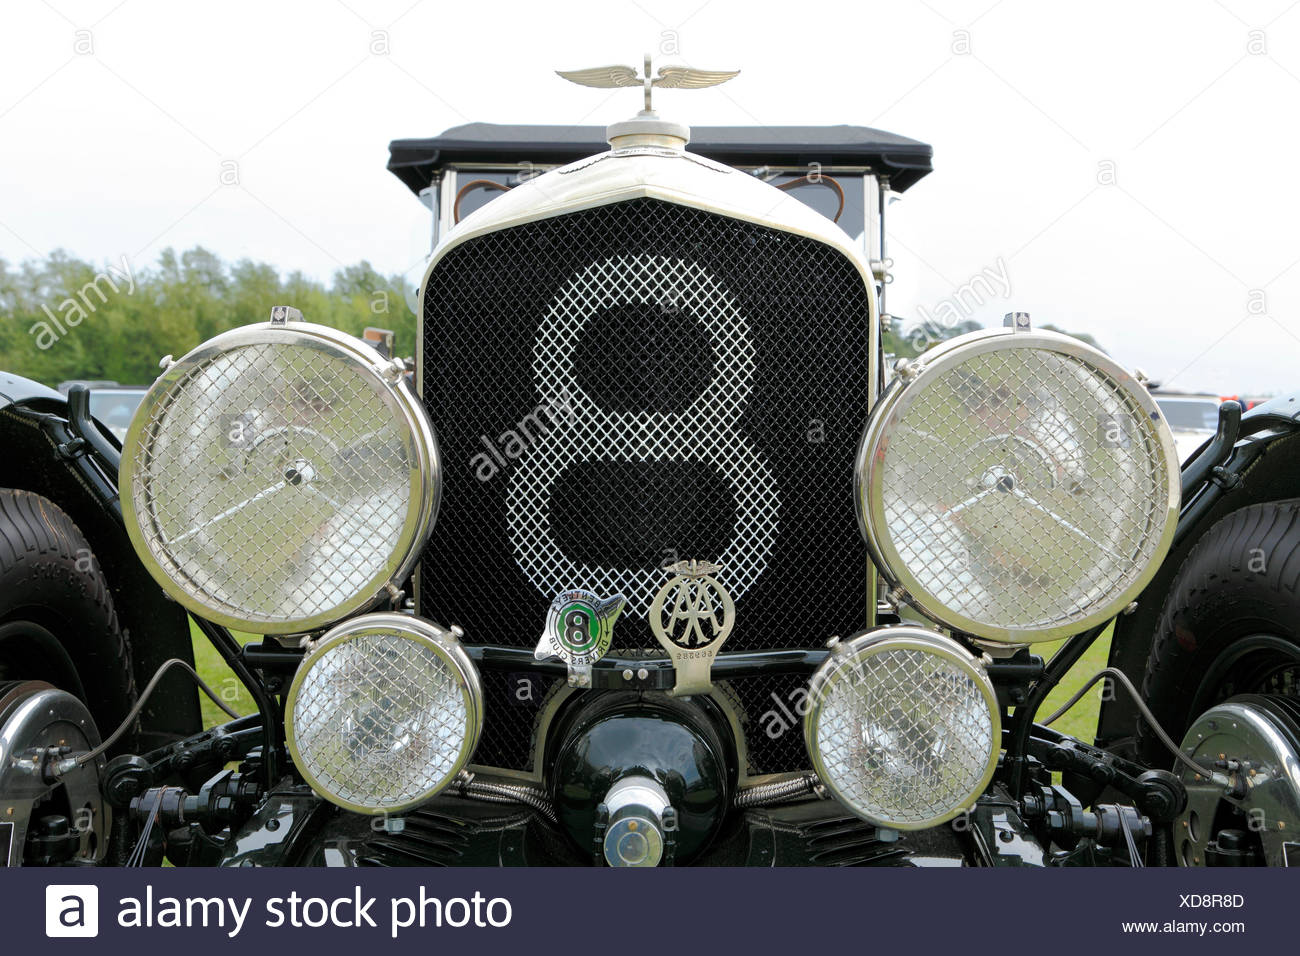 8 Cylinder Car Stock Photos & 8 Cylinder Car Stock Images